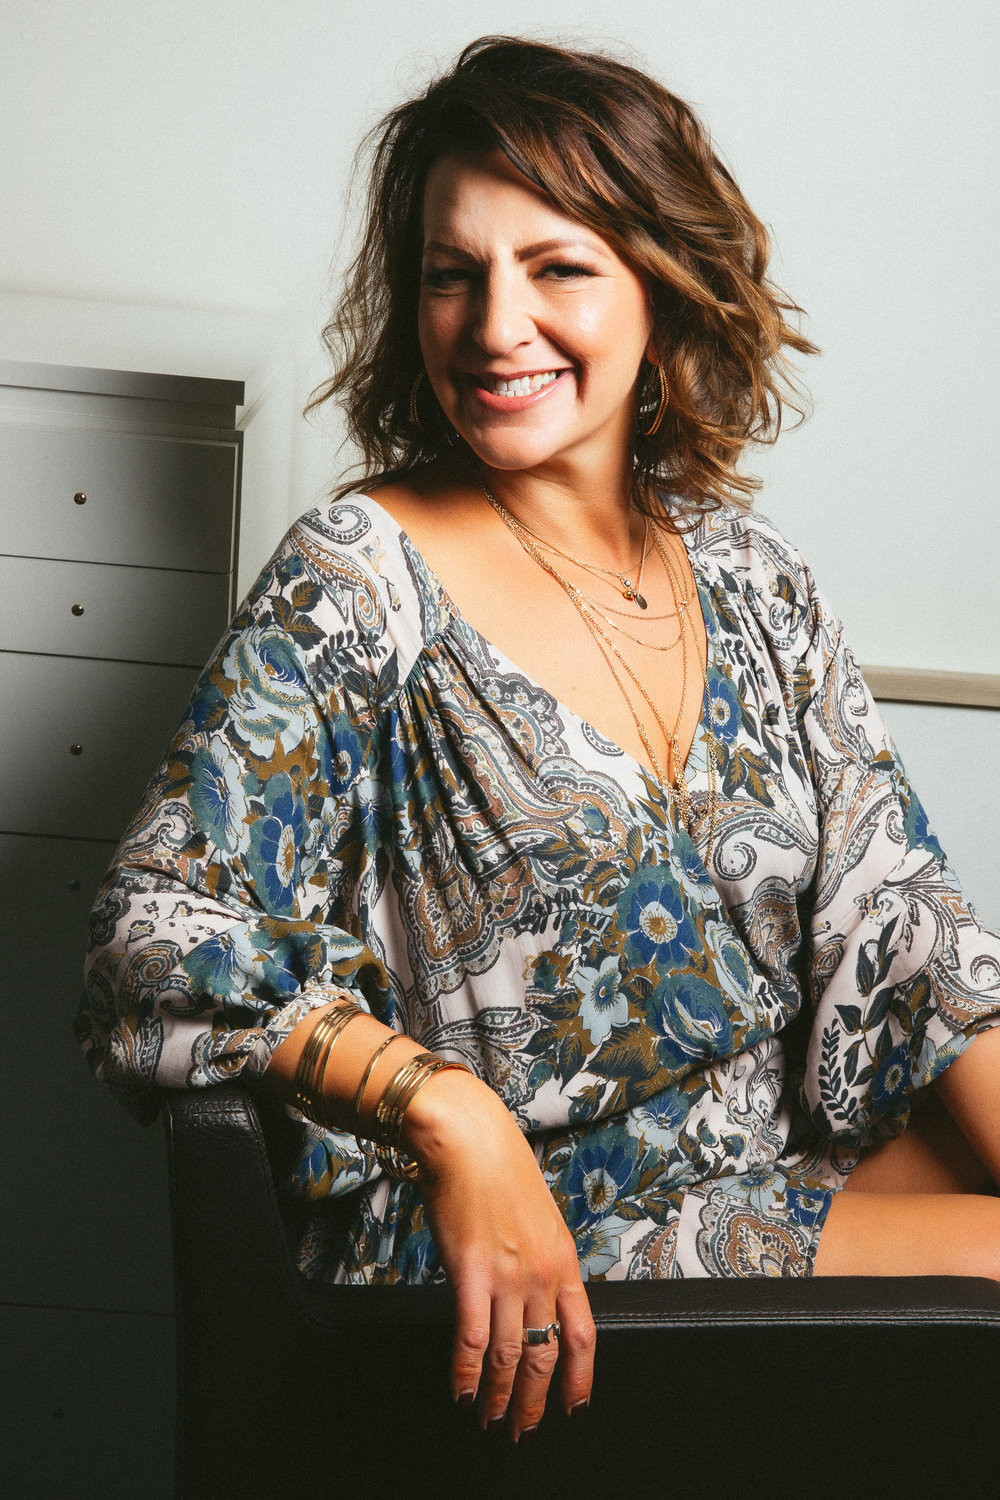 LAURA PHELAN - Owner, Master Hair Stylist + Colorist